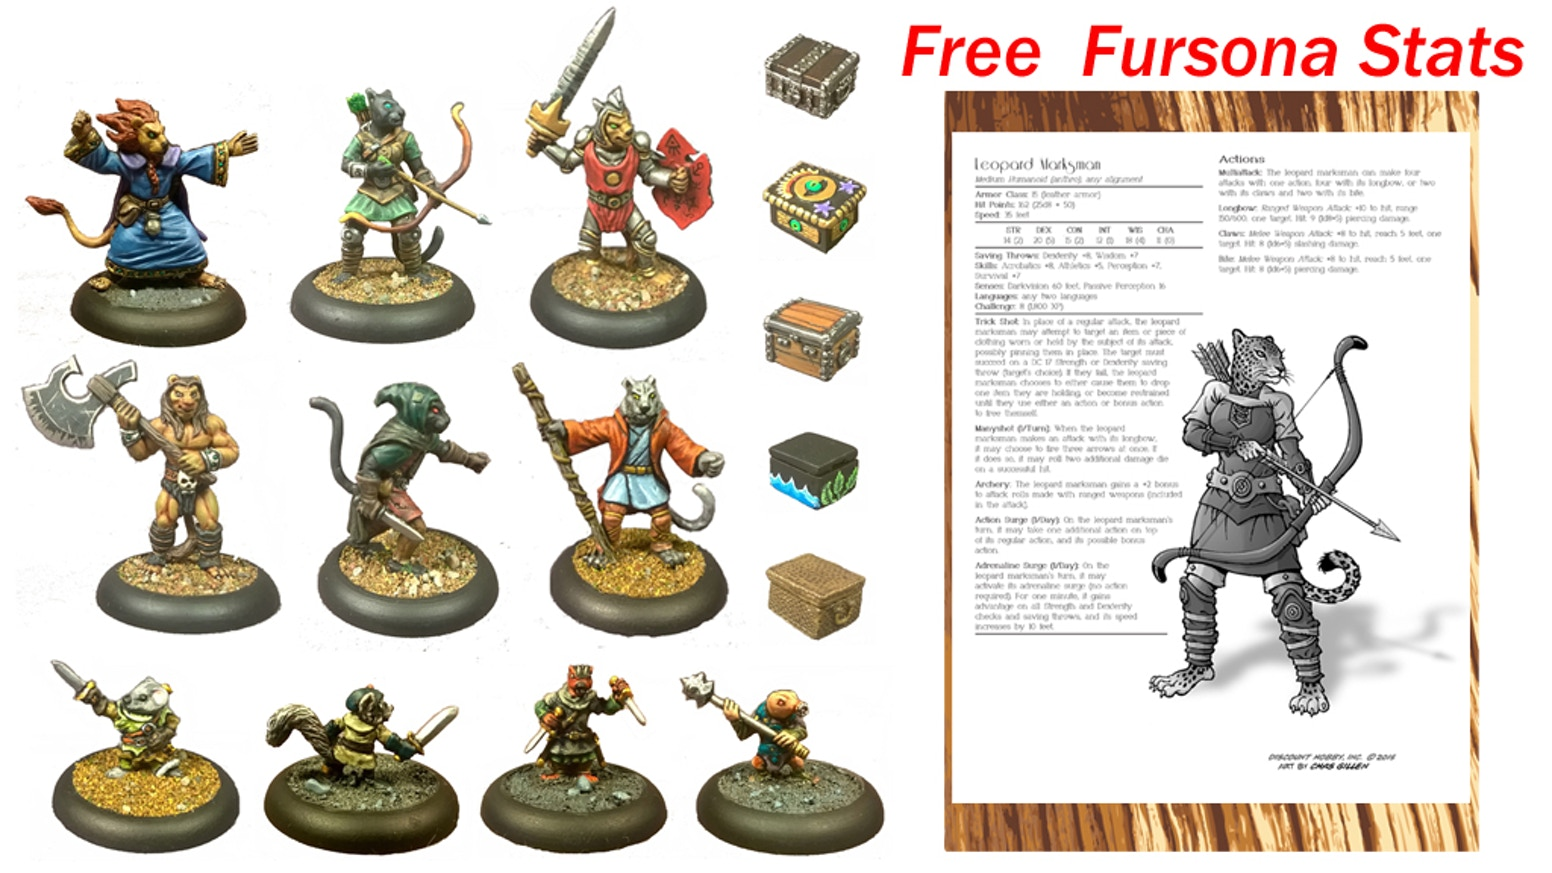 Dungeon Scenery & Anthropomorphic miniatures 28mm by Johnny